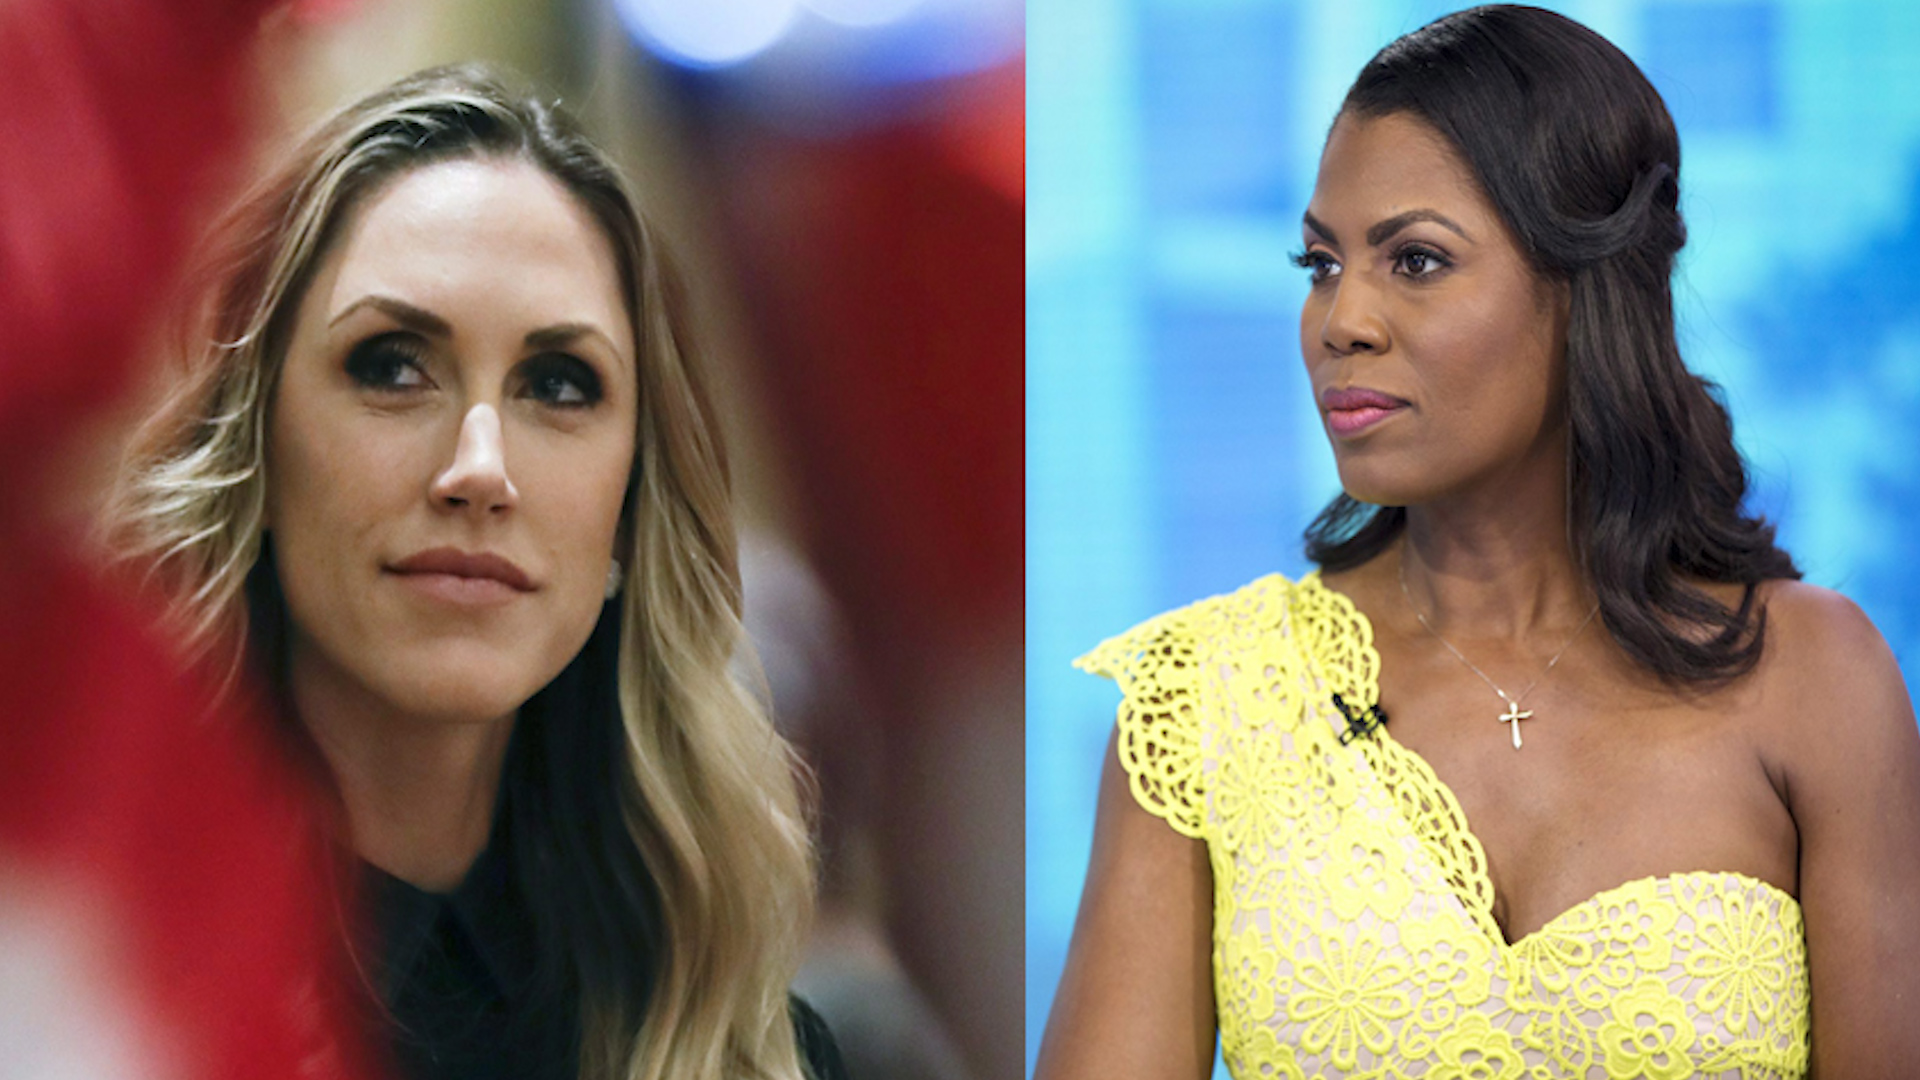 Omarosa claims Trump would DEPORT the First Lady if she divorces him